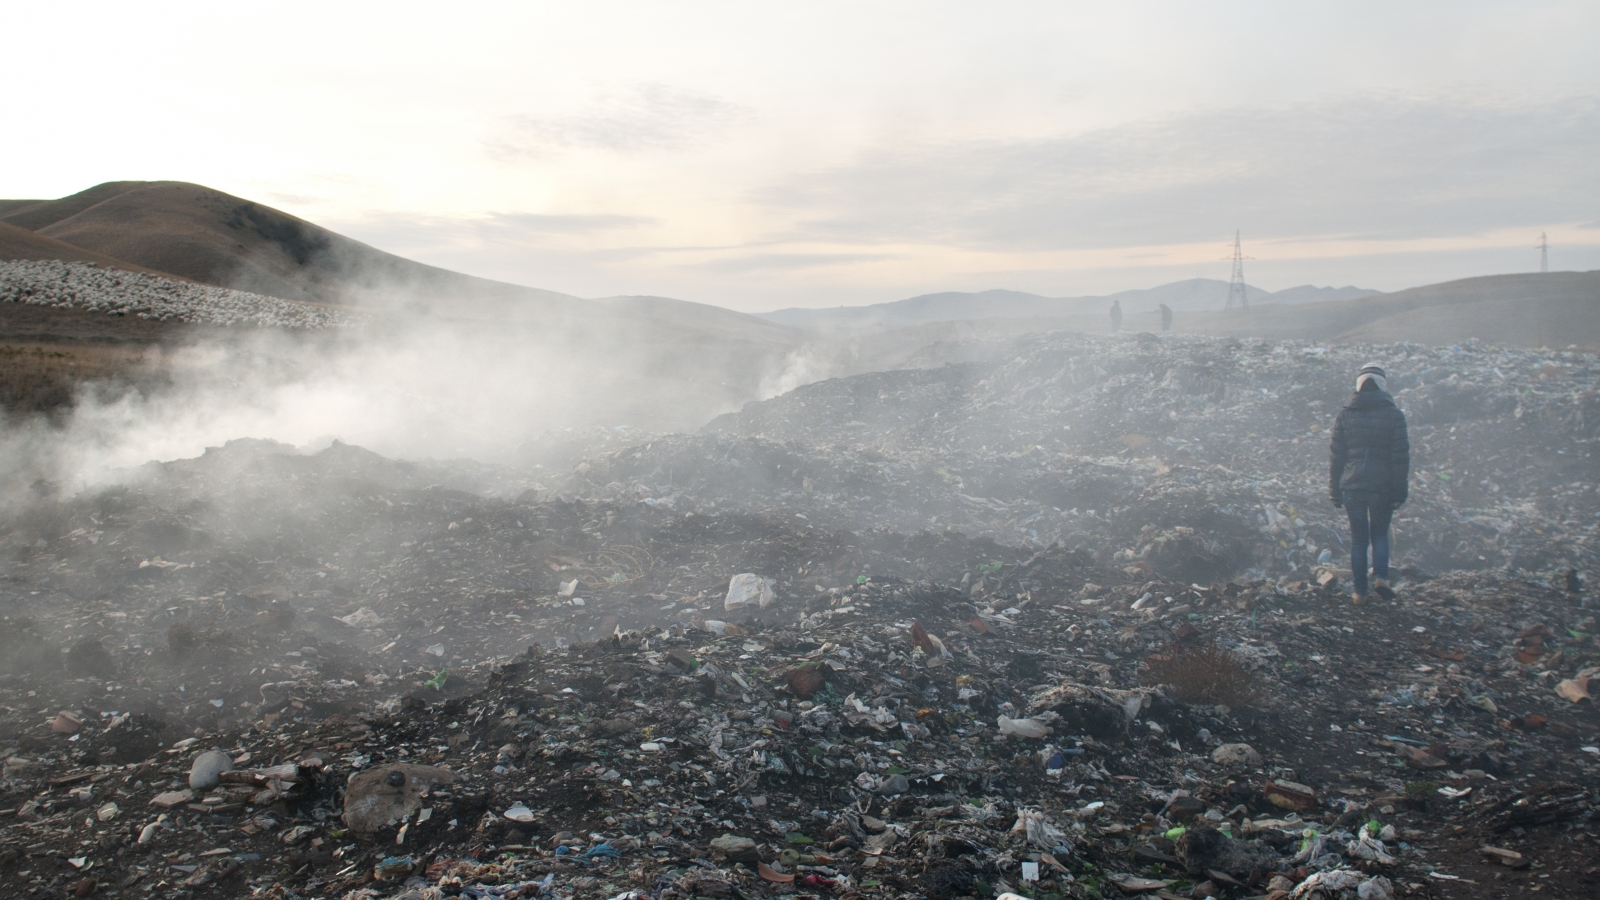 Aghluja's landfill near Rustavi city, Georgia (archive photo: 2012)